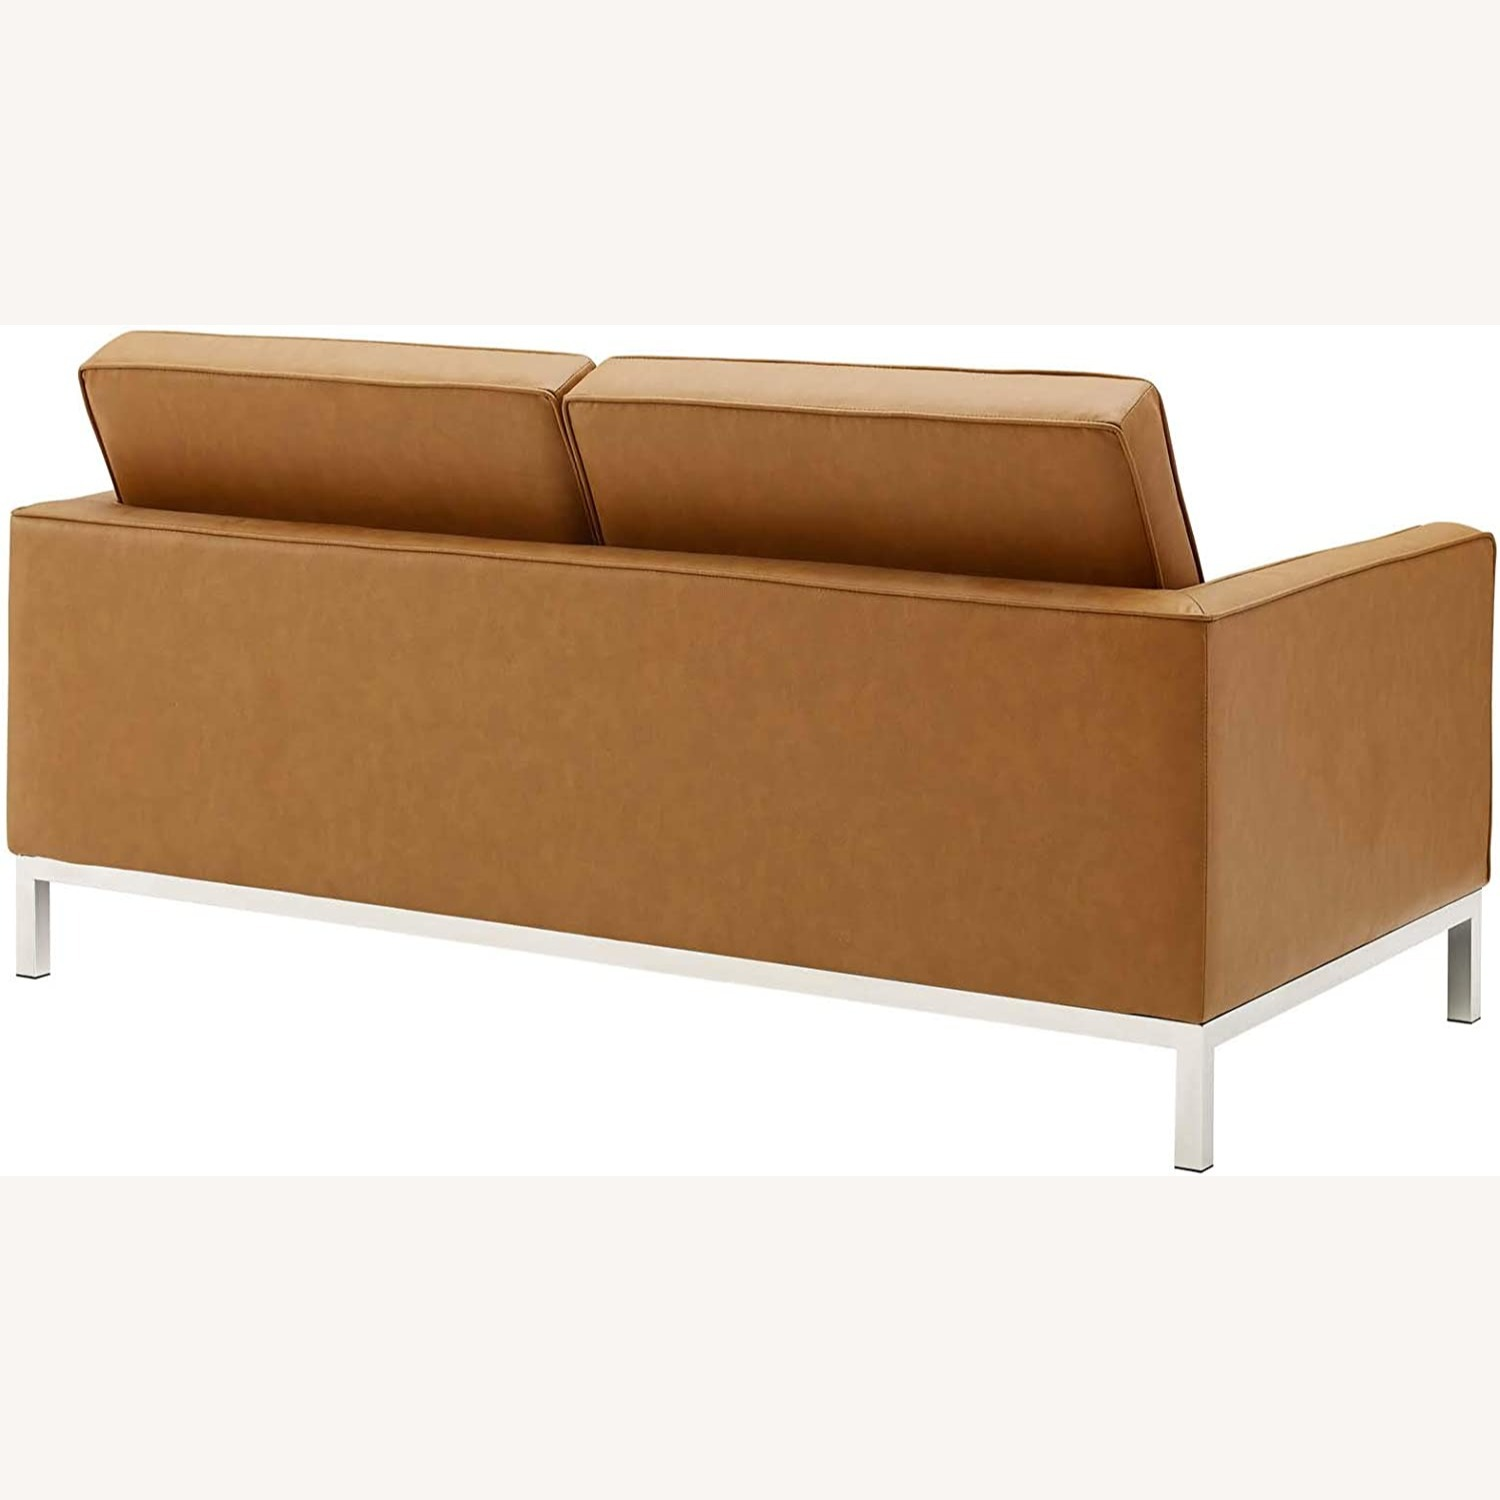 Modern Loveseat In Silver Tan Faux Leather Finish - image-2